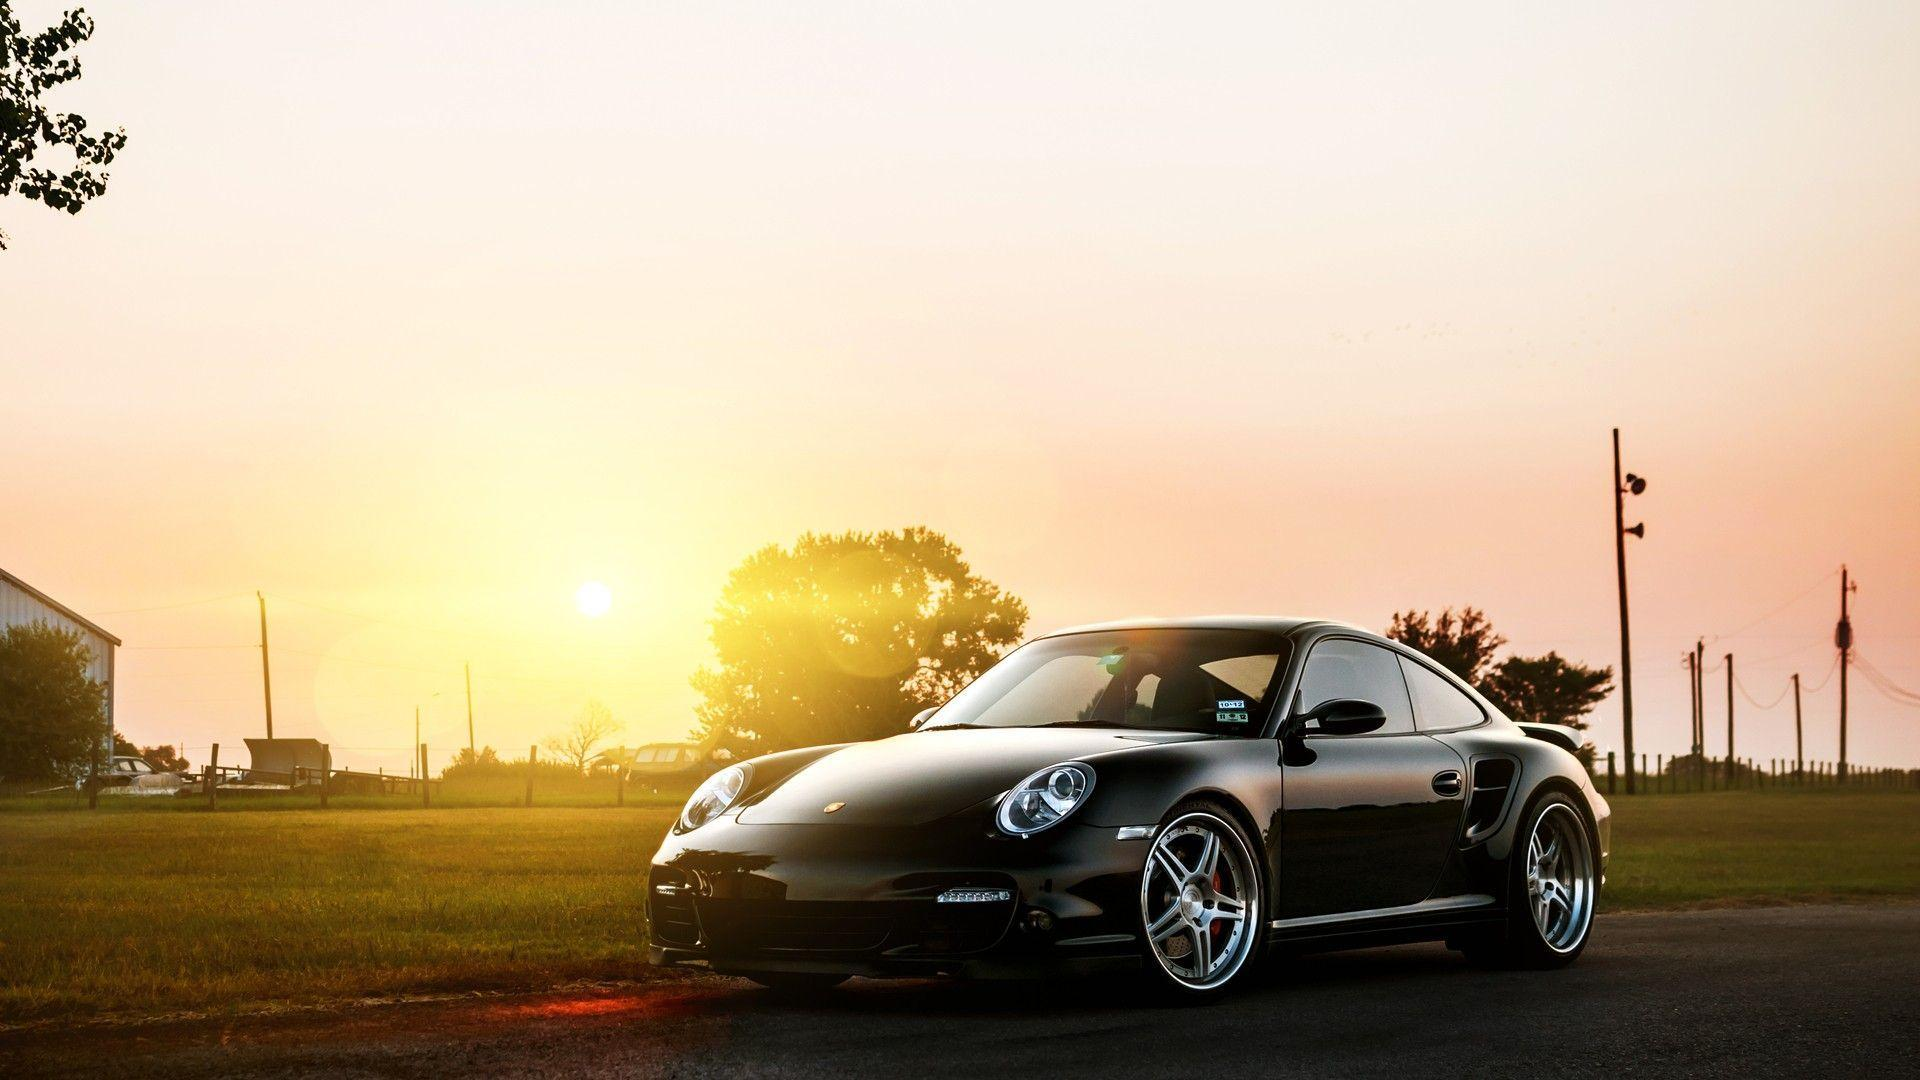 porsche wallpaper black 12258 hd pictures top wallpaper desktop